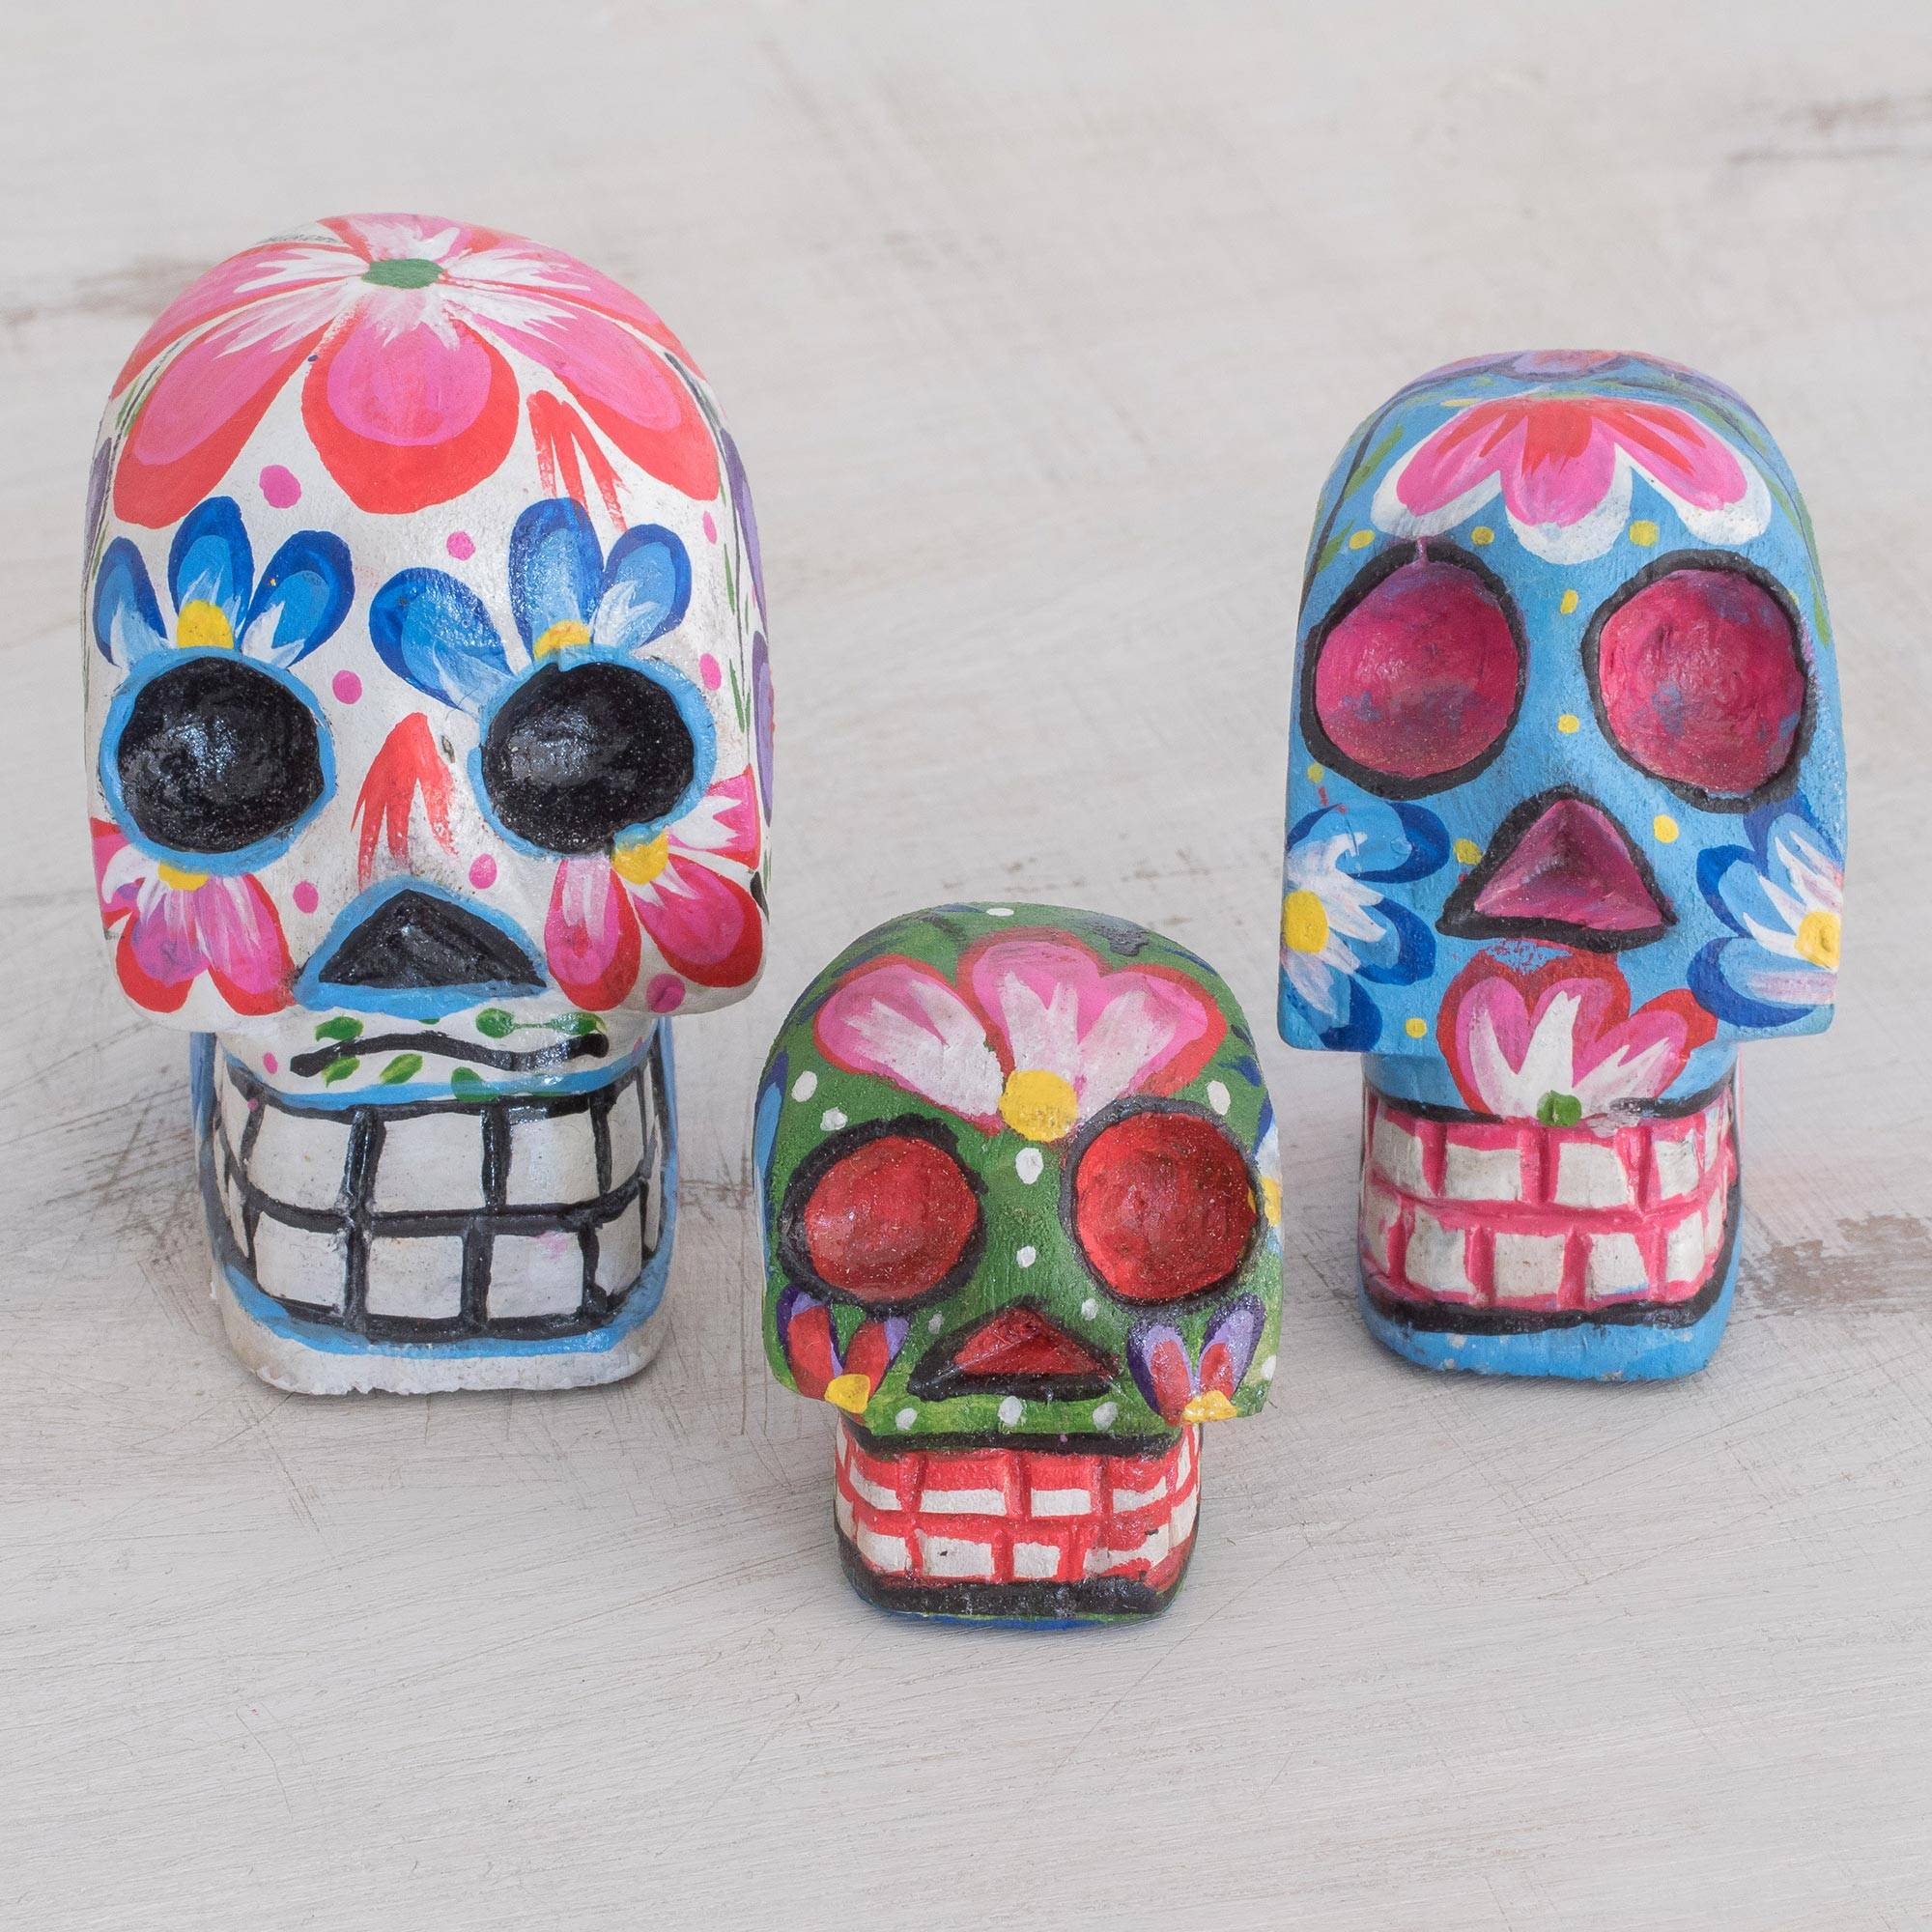 Life and Color Wood Floral Skull Figurines from Guatemala (Set of 3)